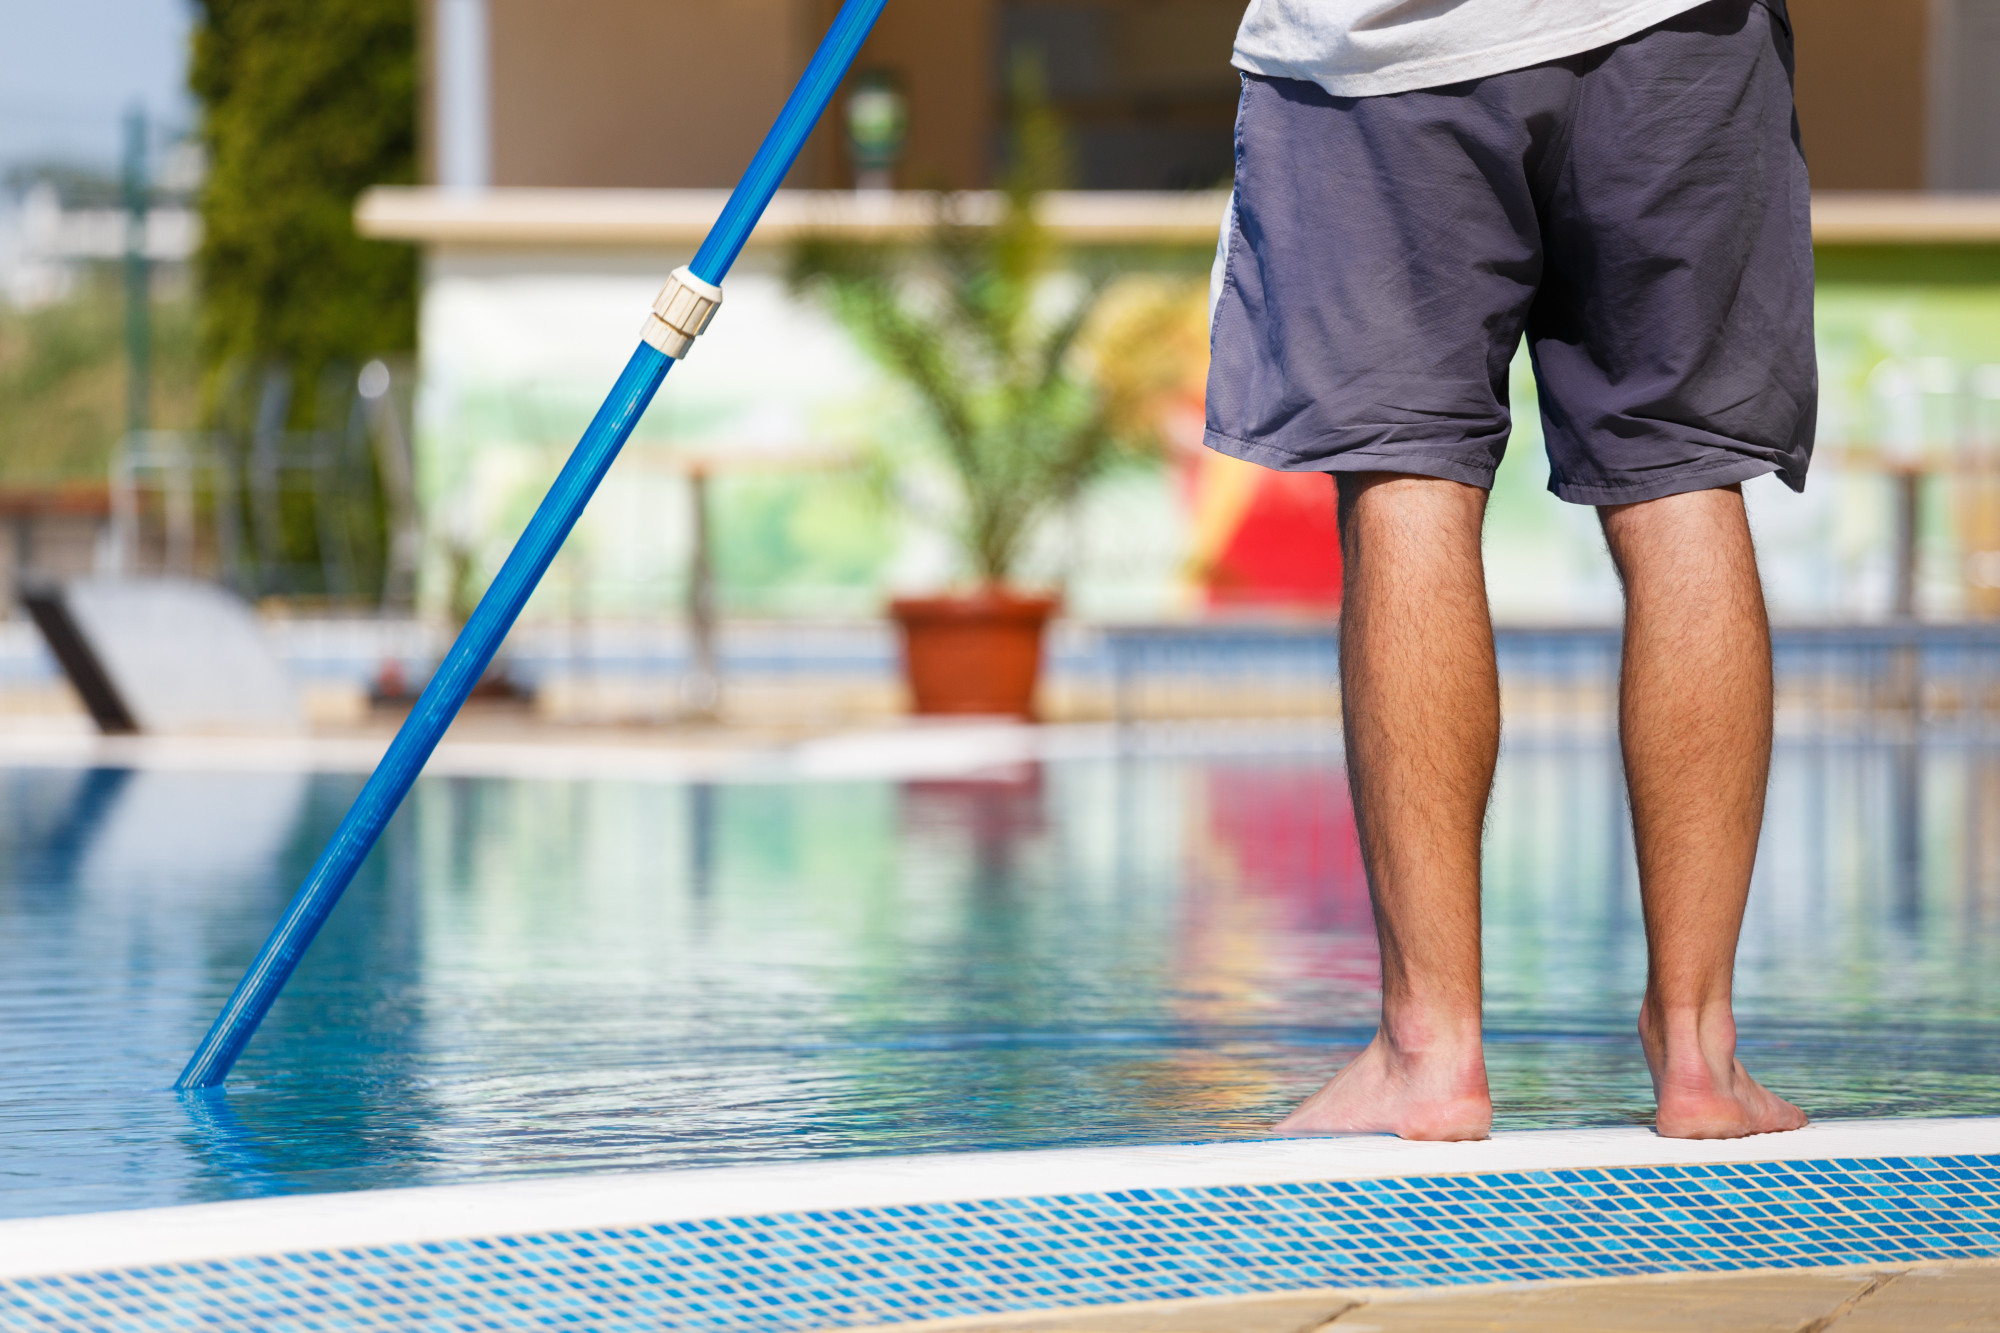 How to Drain a Swimming Pool: The Complete Guide